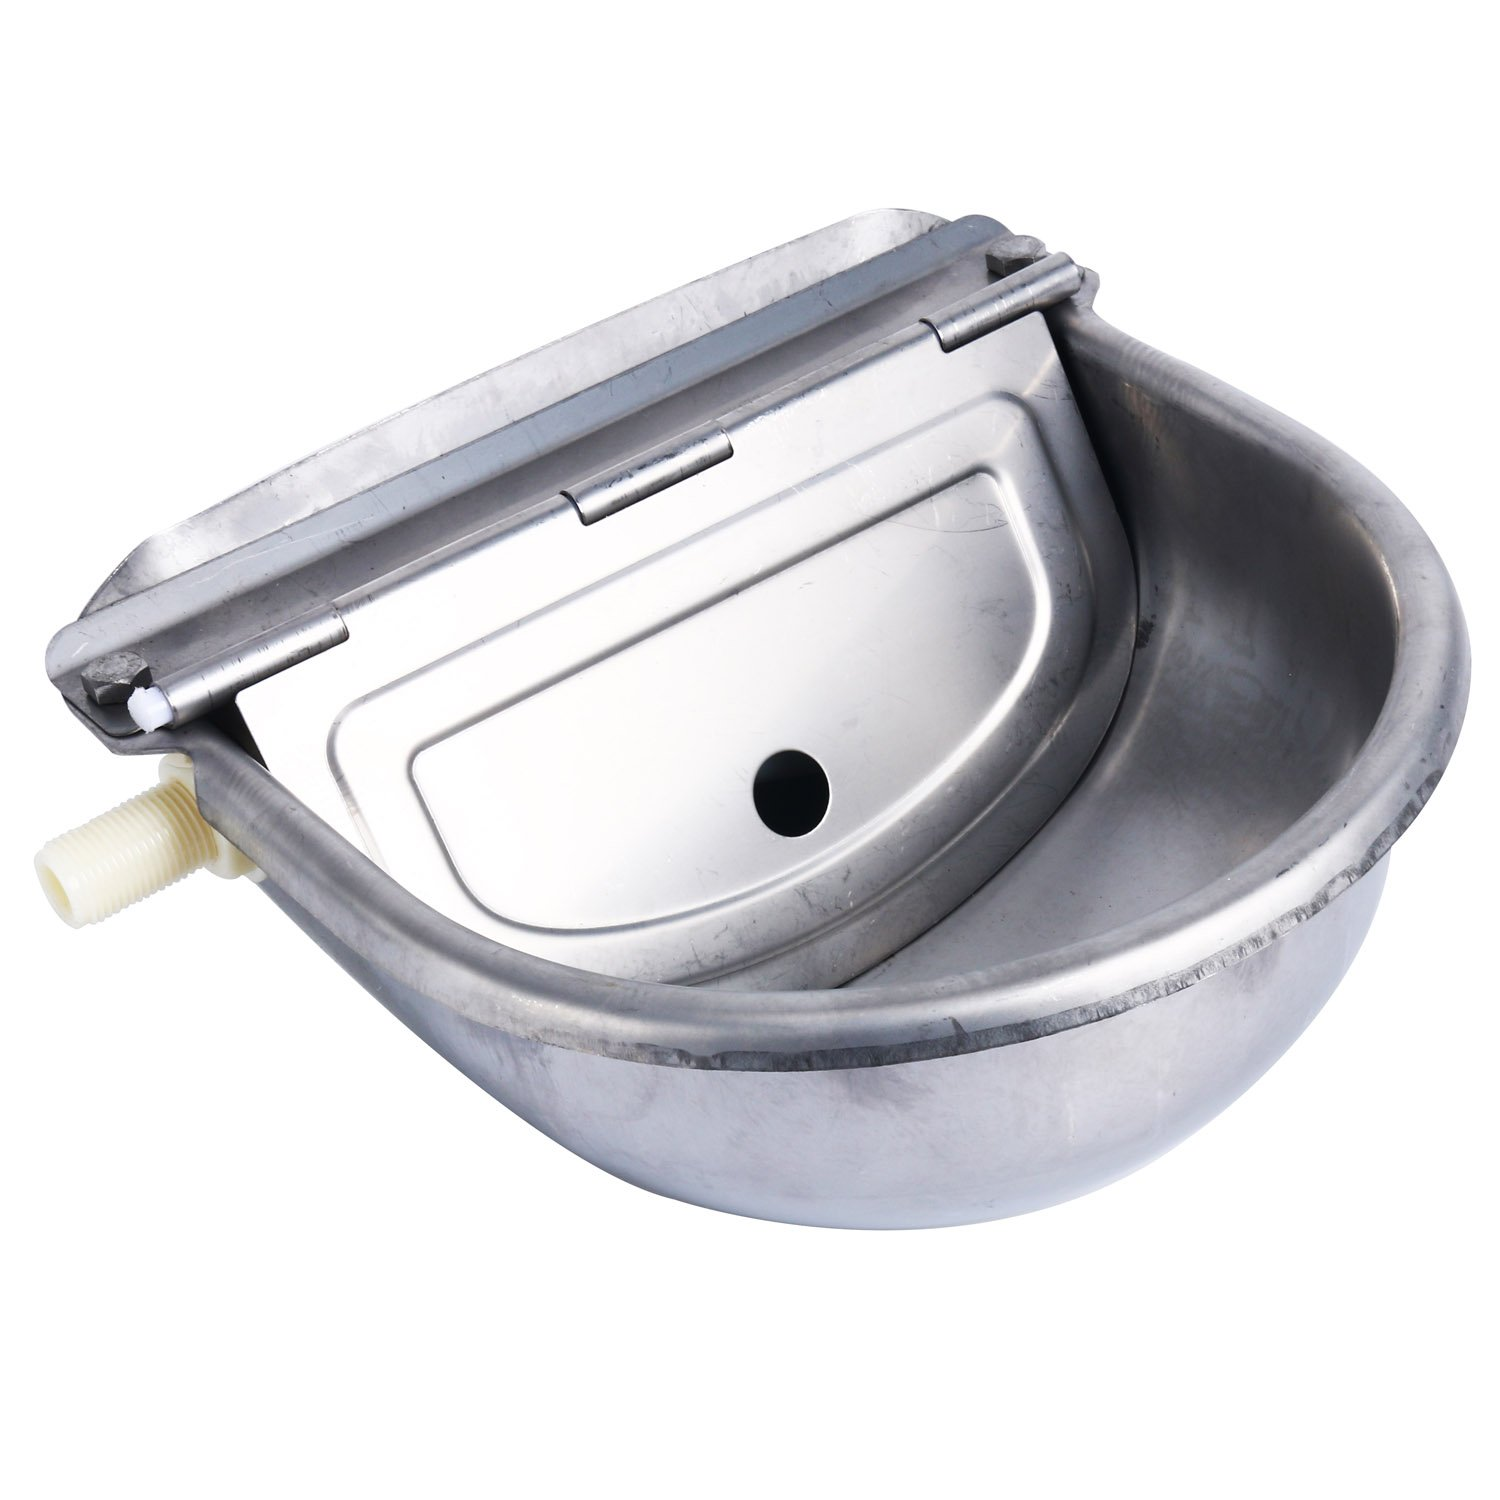 Homend Automatic Waterer Bowl Farm Grade Stainless Stock Waterer Horse Cattle Goat Sheep Dog Water